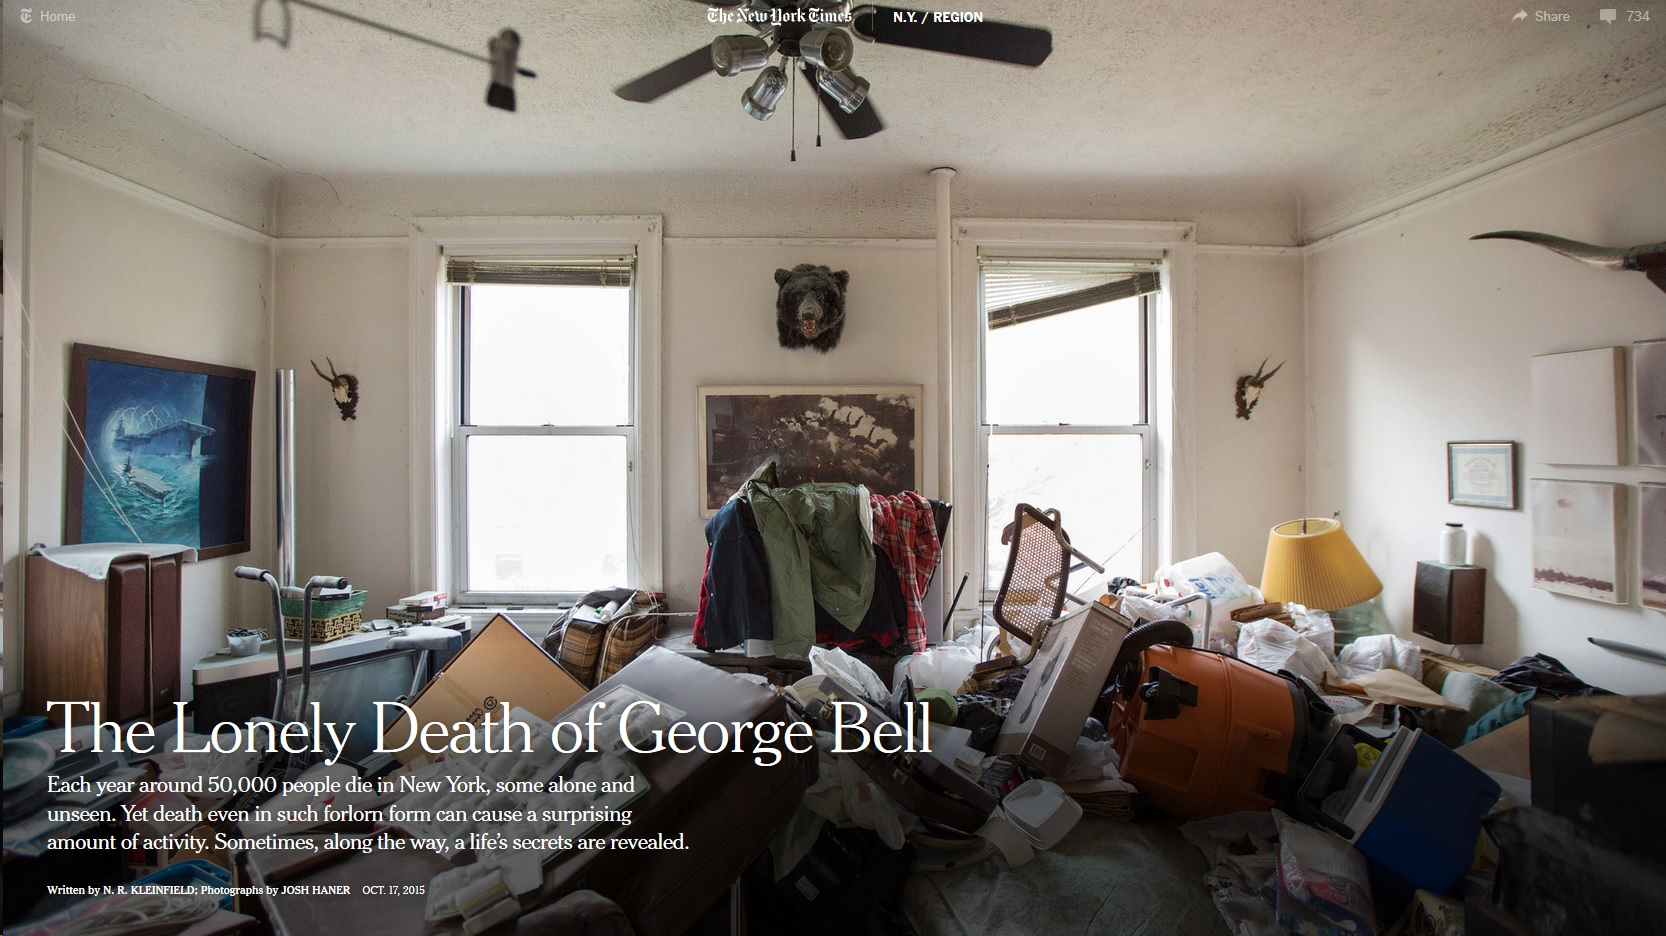 The lonely death of george bell ny times special feature pocket epic ny times lonely death of george bell feature aloadofball Gallery